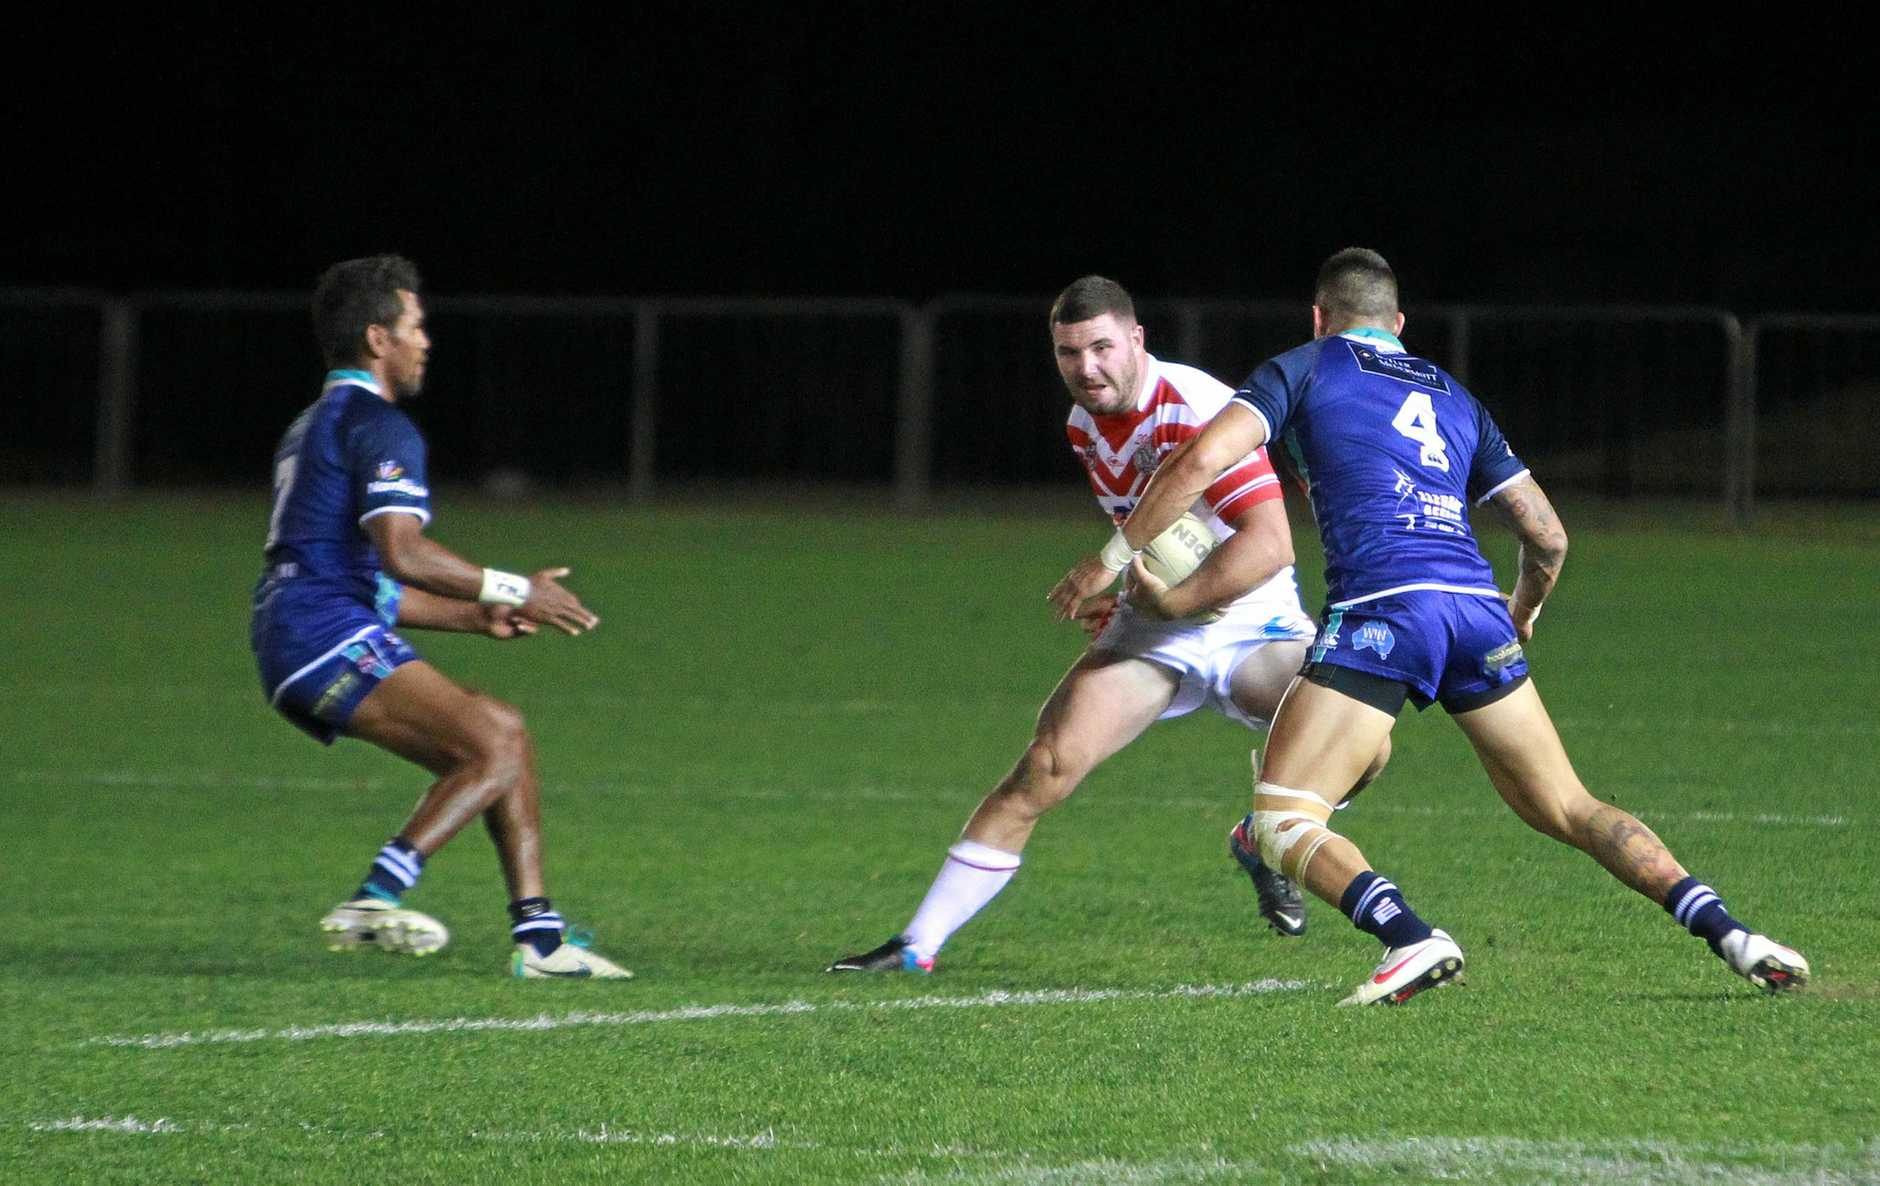 Caloundra RSL Cup A Grade Rugby League Grand Final at Stockland Stadium, Kawana: Samuel Hambly. Photo: Brett Wortman / Sunshine Coast Daily